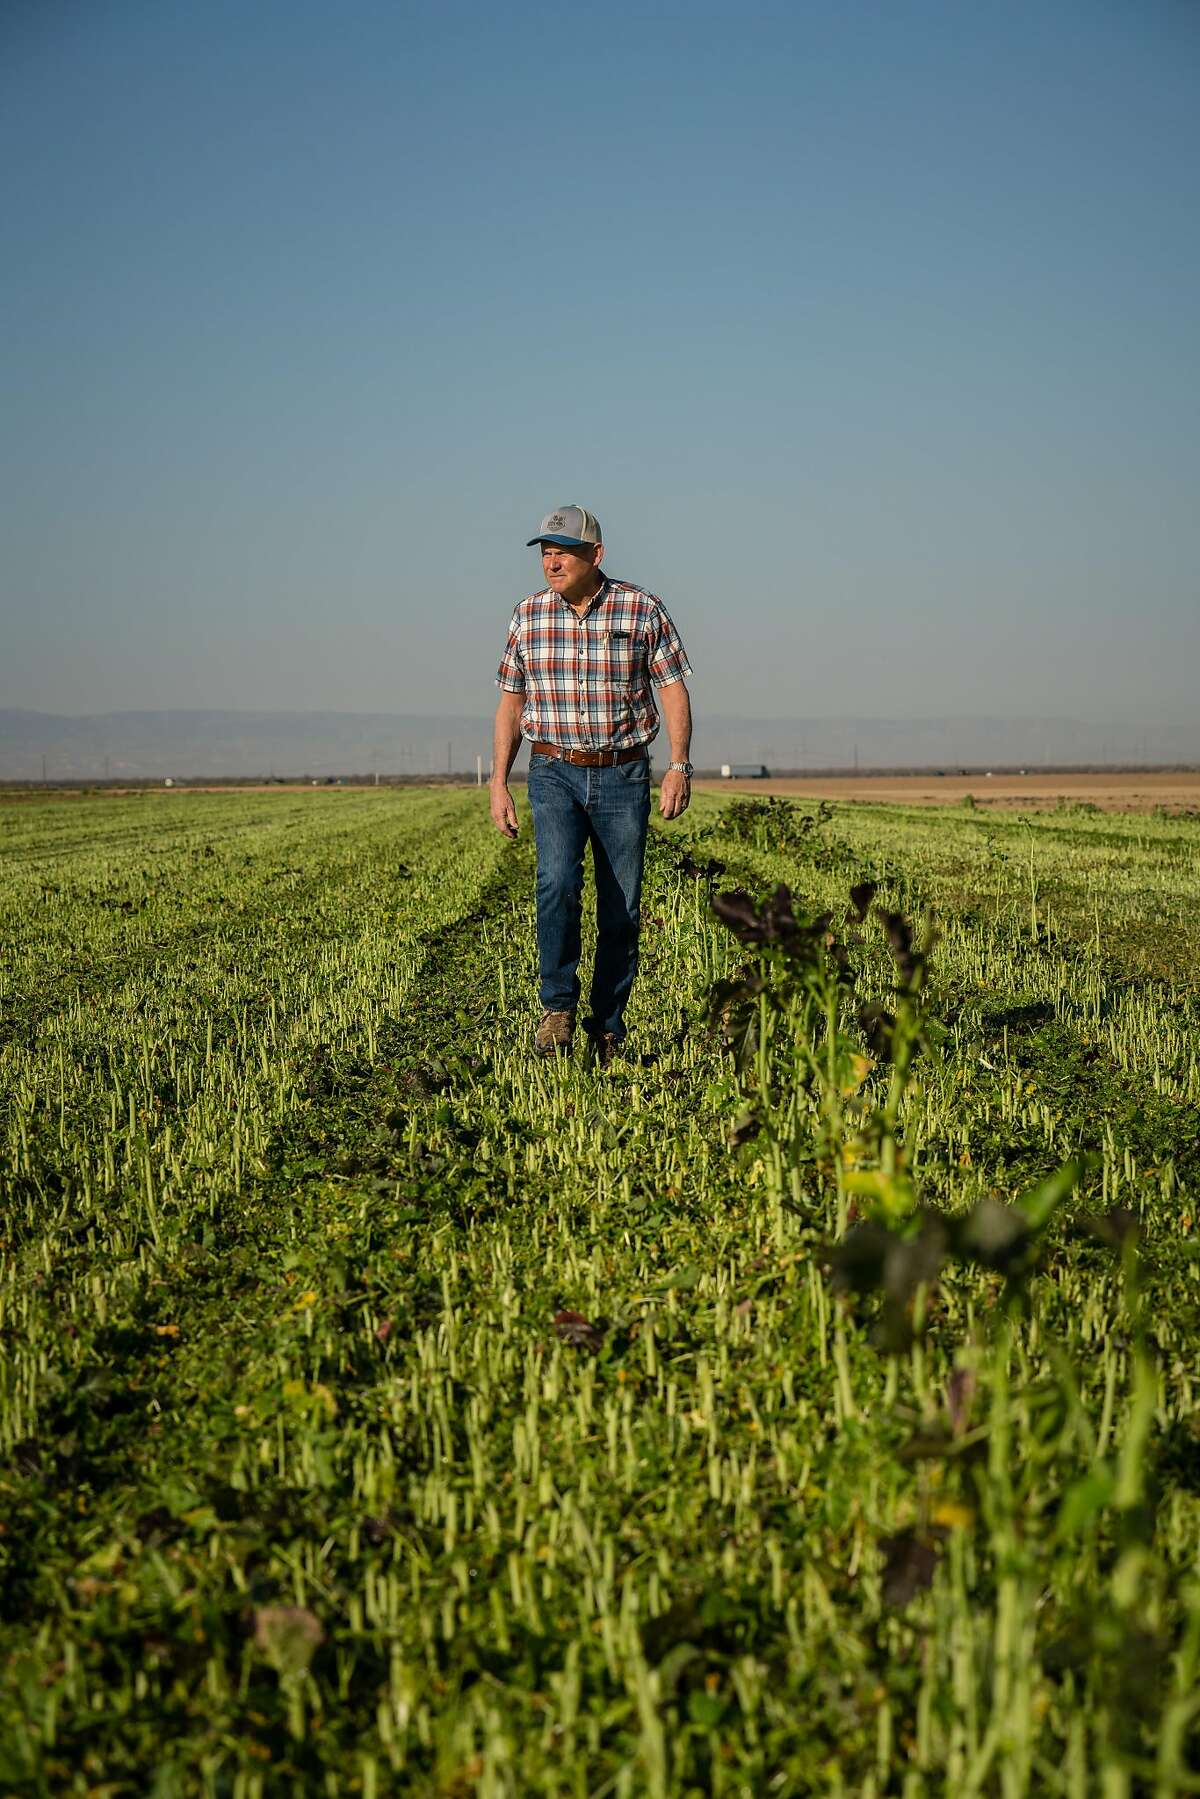 BUTTONWILLOW, CA--Farmer Tim Thompson farms a little over 1200 acres near Bakersfield. Tim has a difficult time getting water for his crops. Getting water for his crops is the main issue he wants to communicate to President Trump.